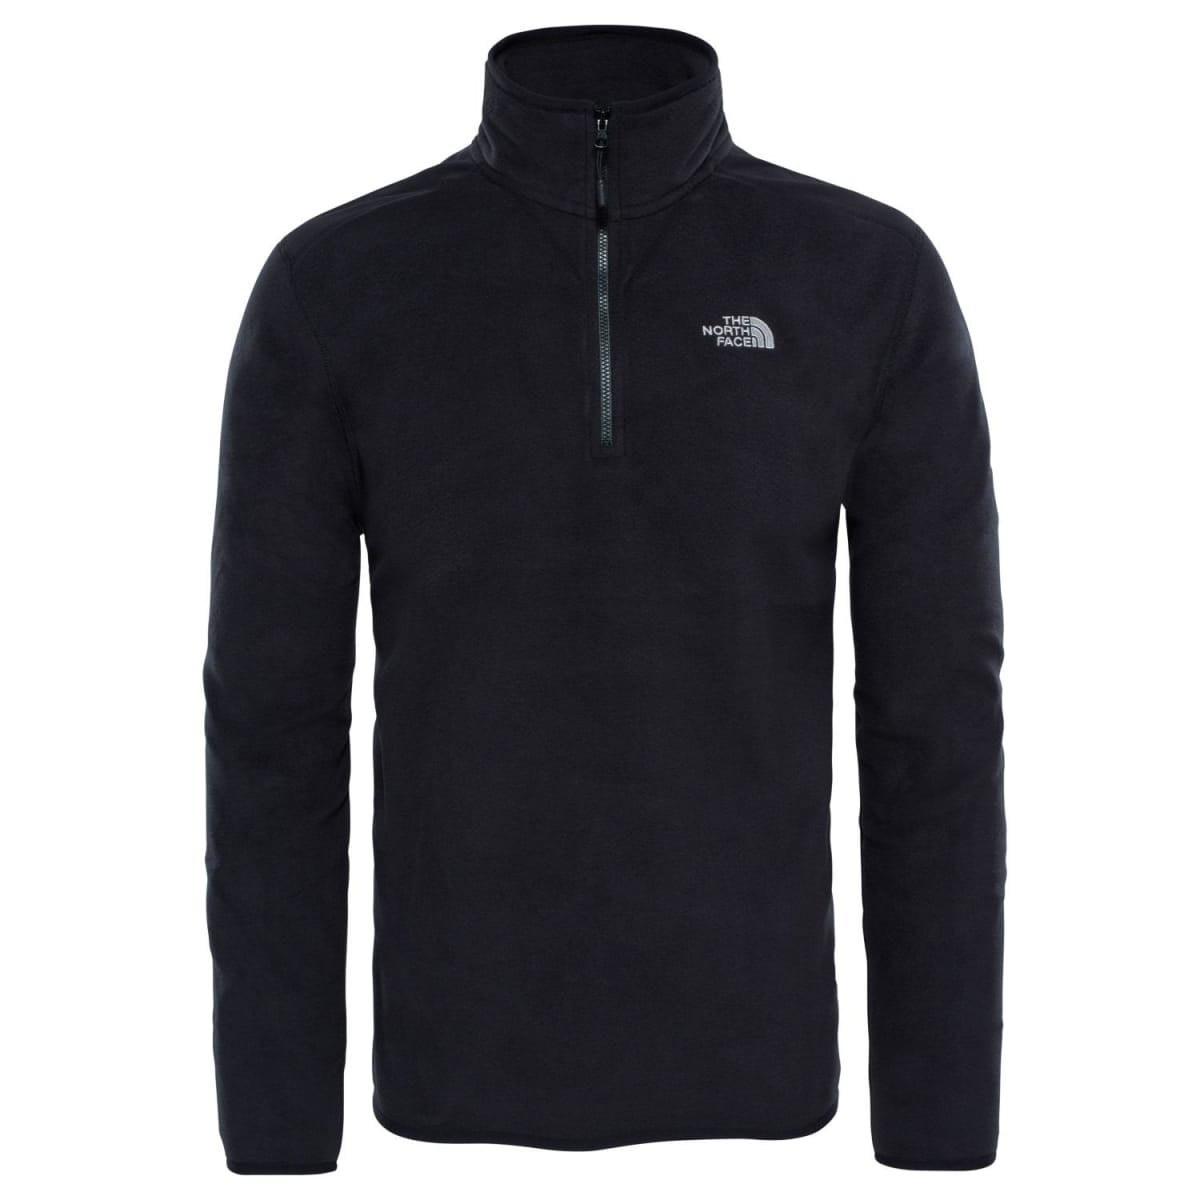 9b9f44468 North Face Products | Sportsmans Warehouse